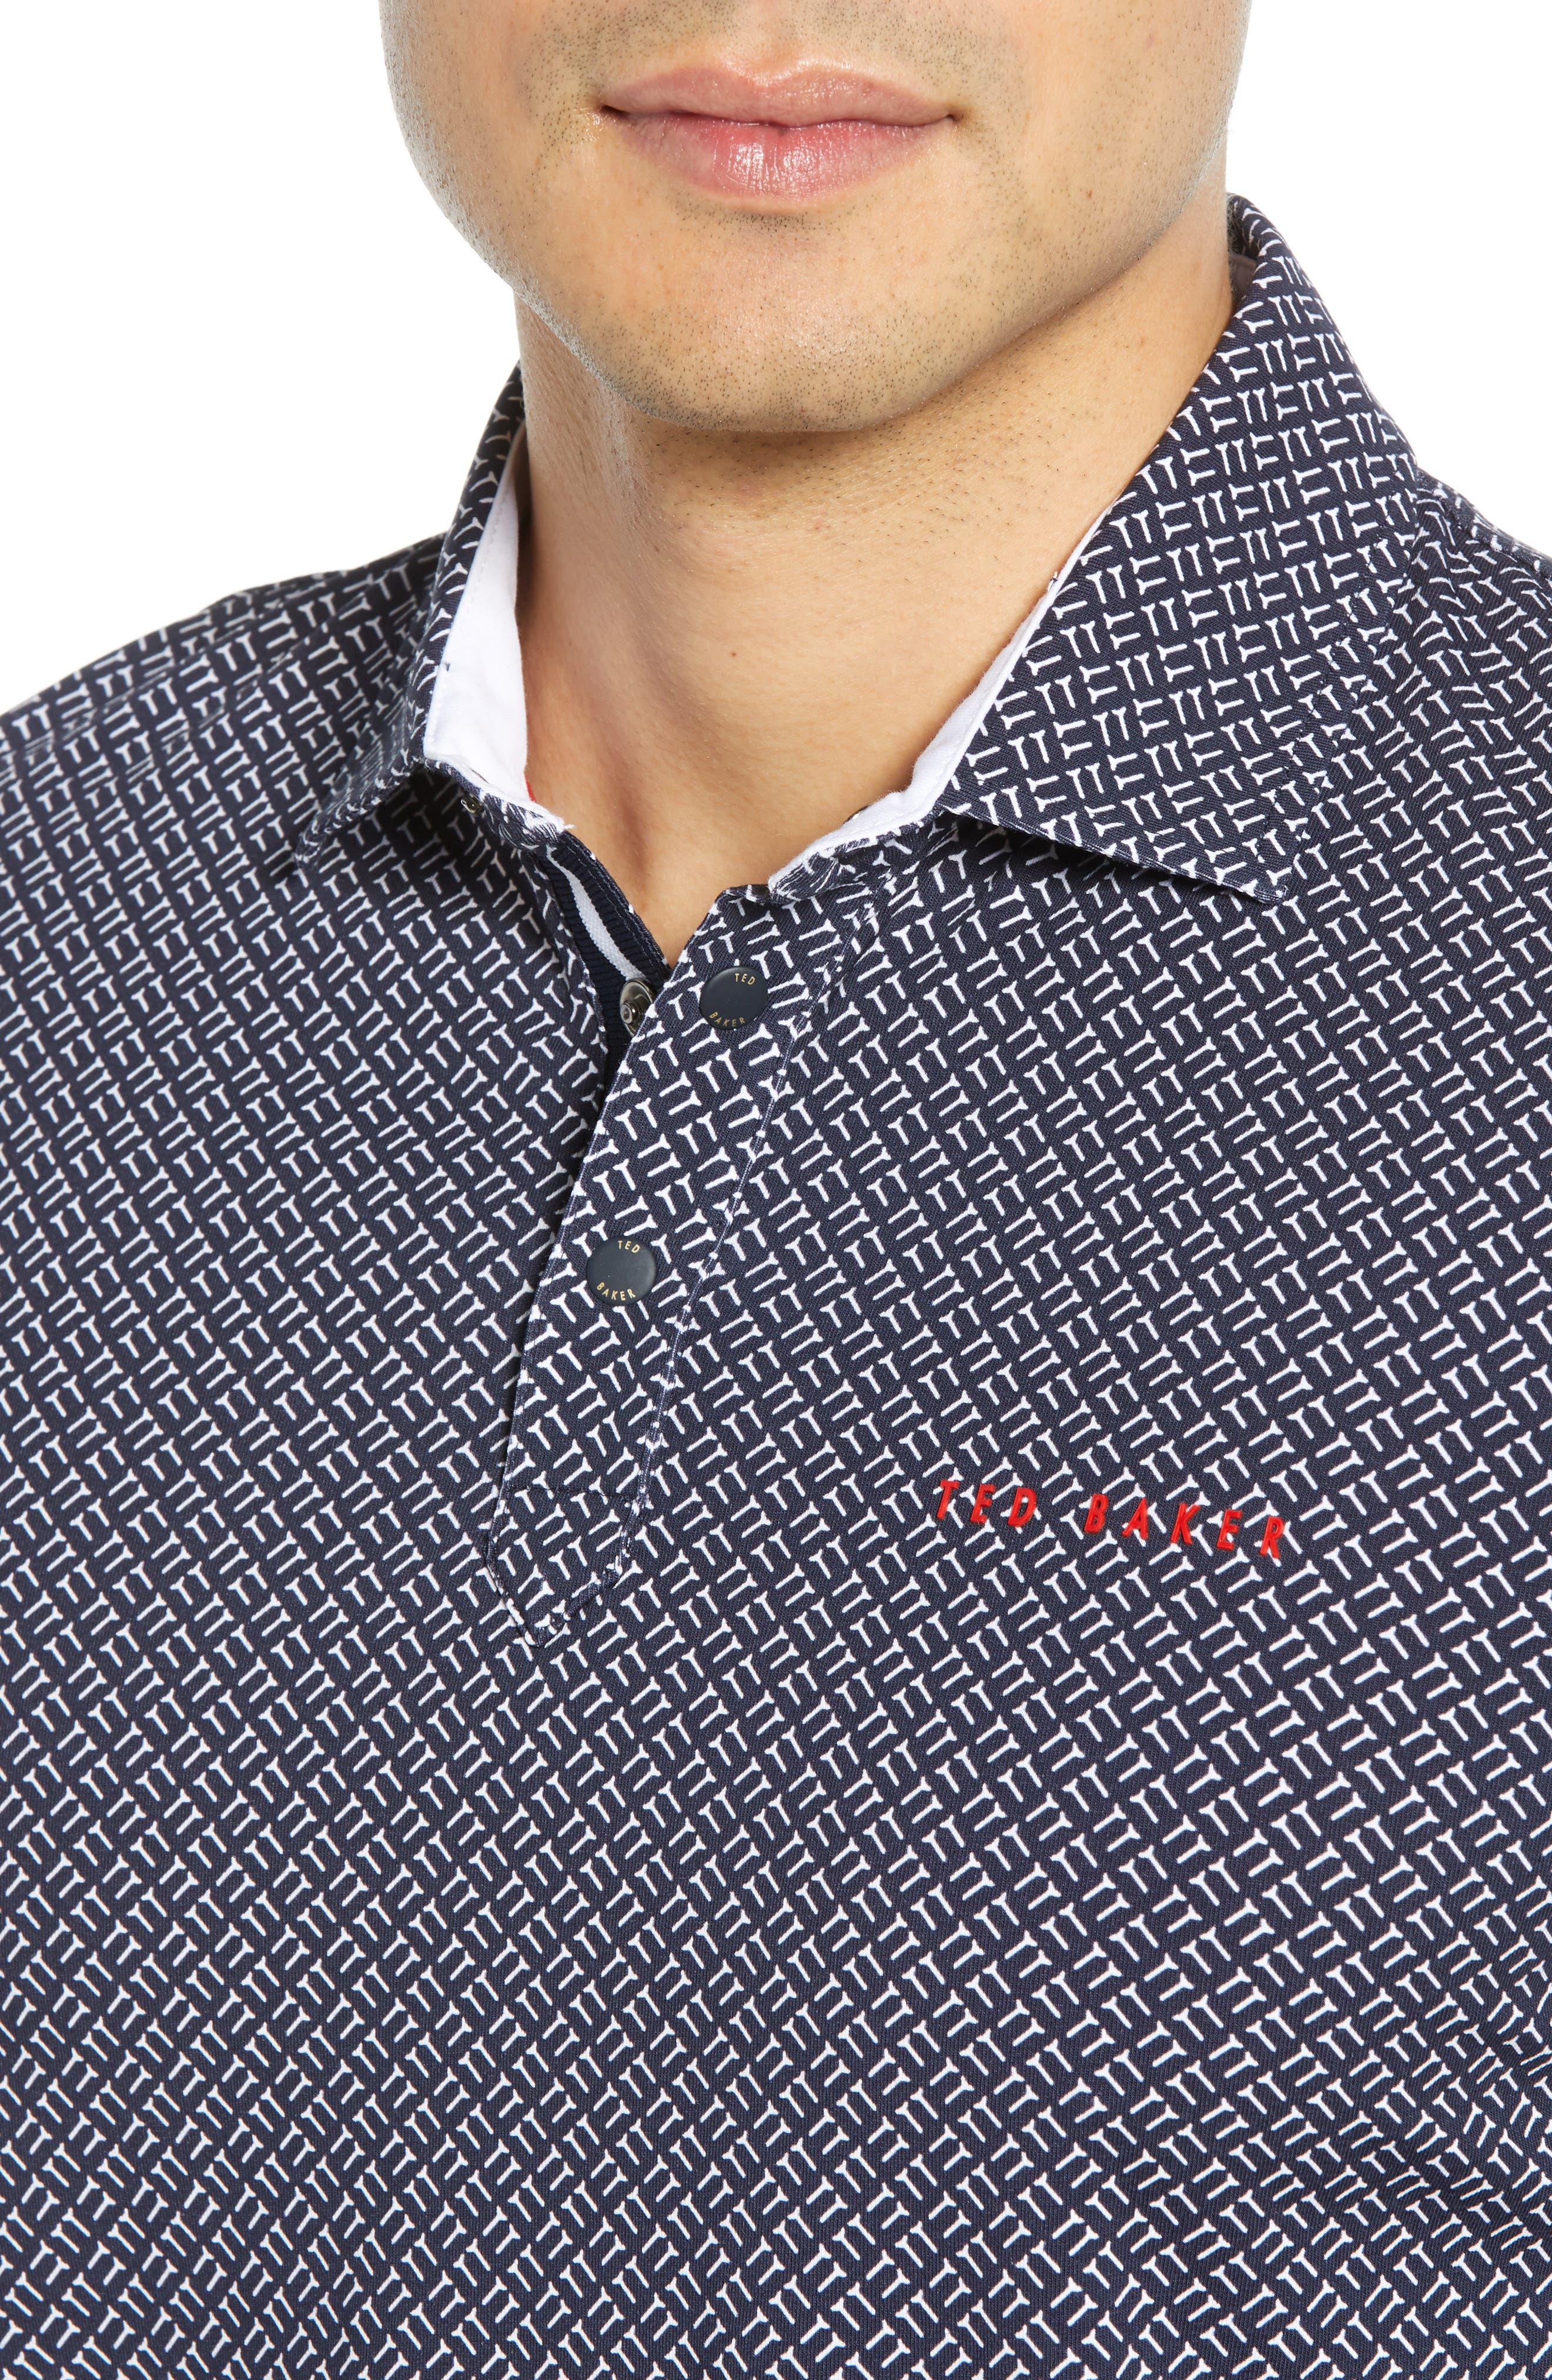 TED BAKER LONDON, Wallnot Slim Fit Golf Polo, Alternate thumbnail 4, color, NAVY